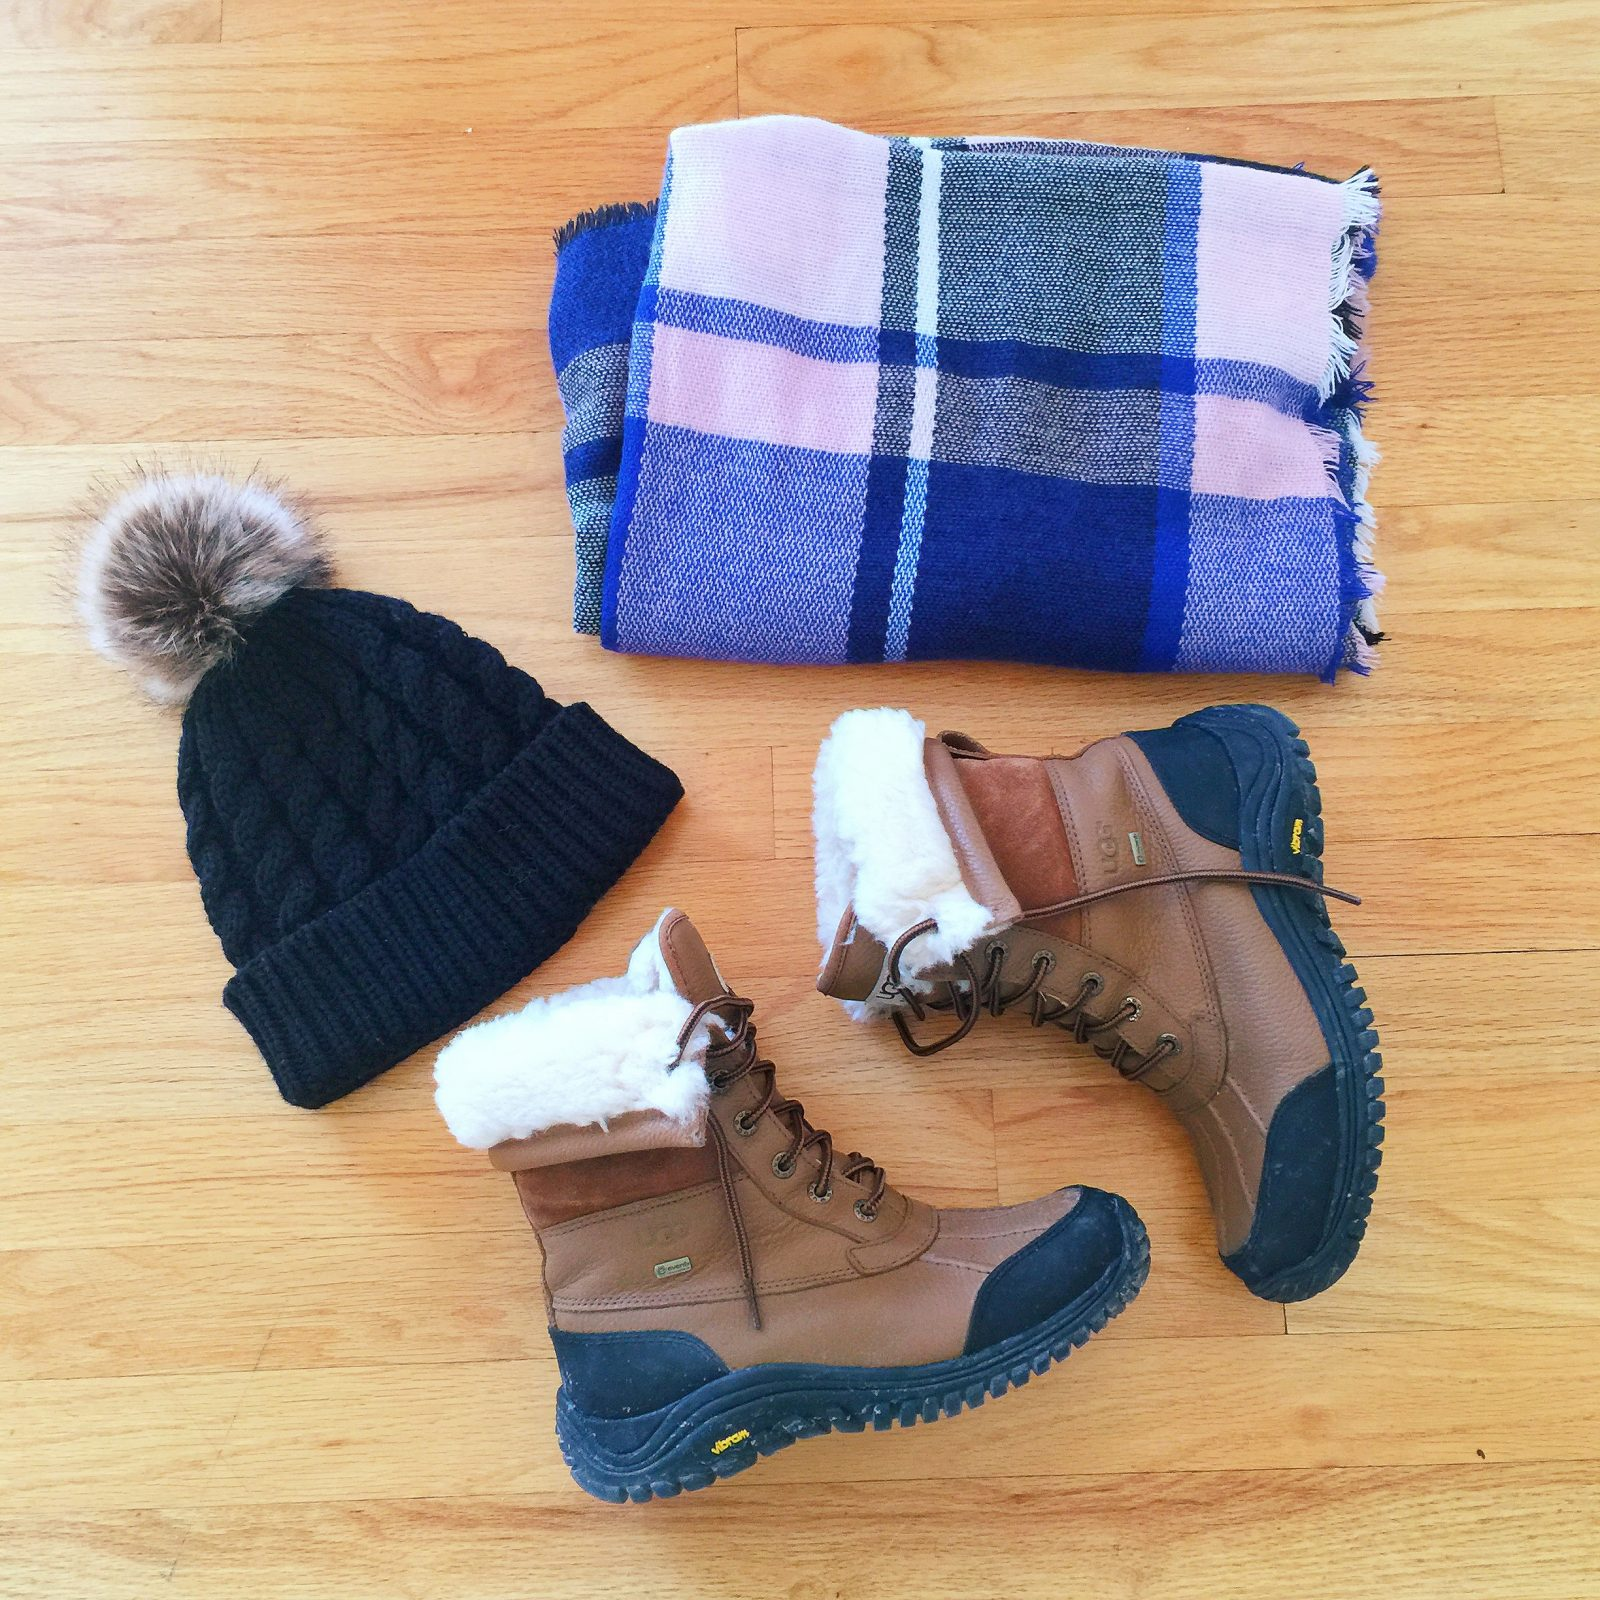 Winter Fashion: The Struggle is Real (at least for me)